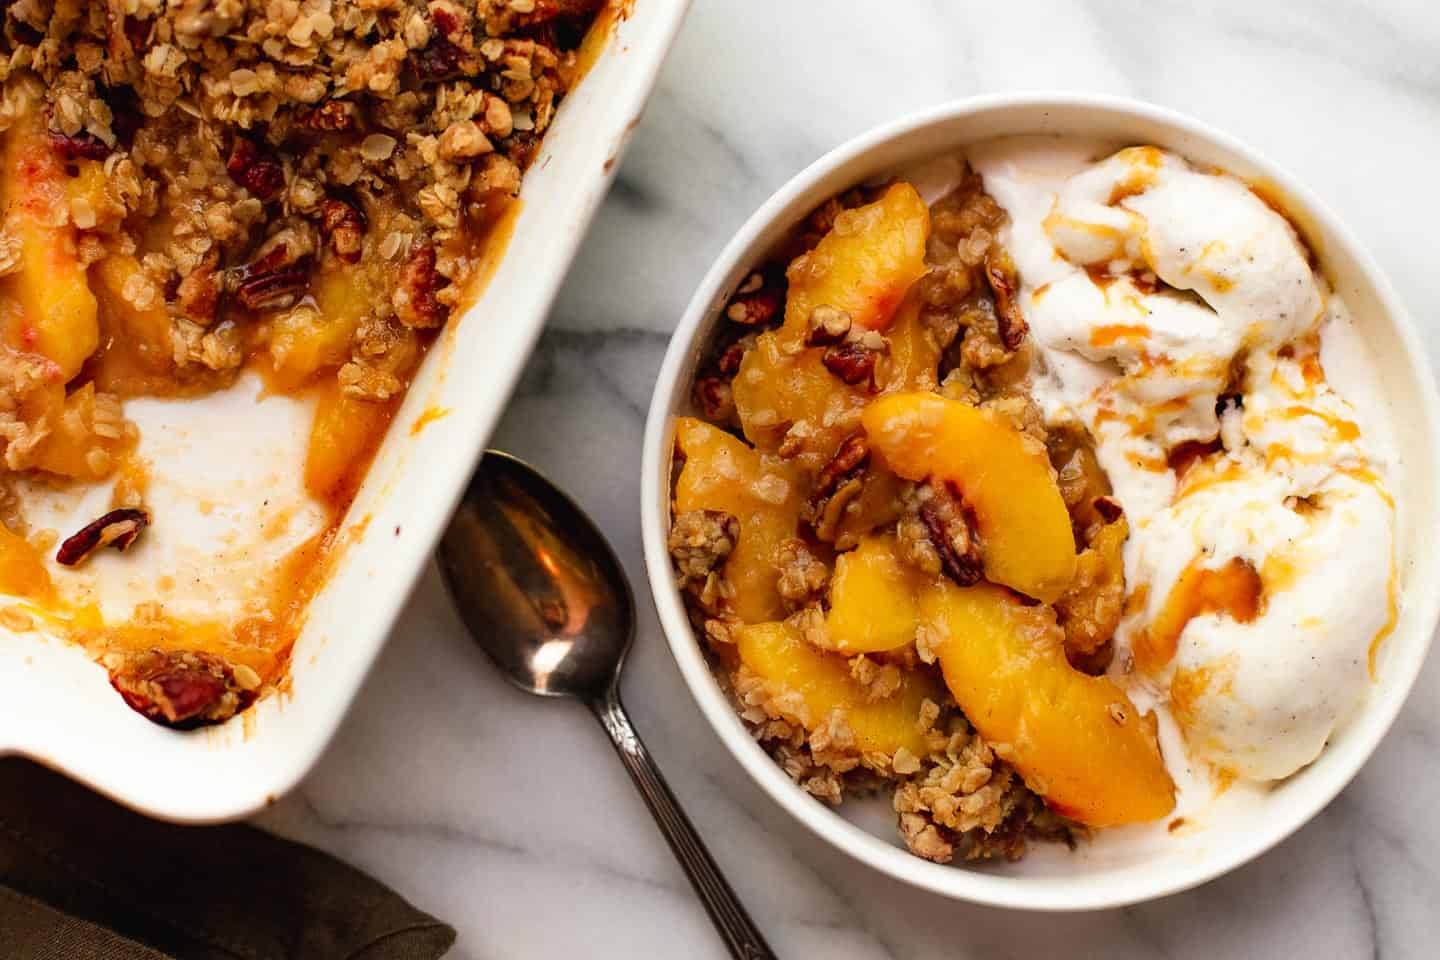 A bowl of peach crisp with ice cream next to the baking dish.